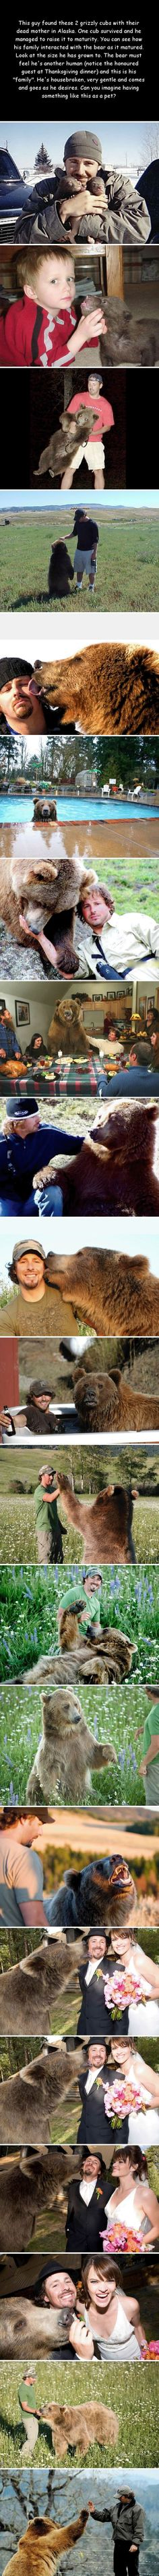 A story of a man and a bear